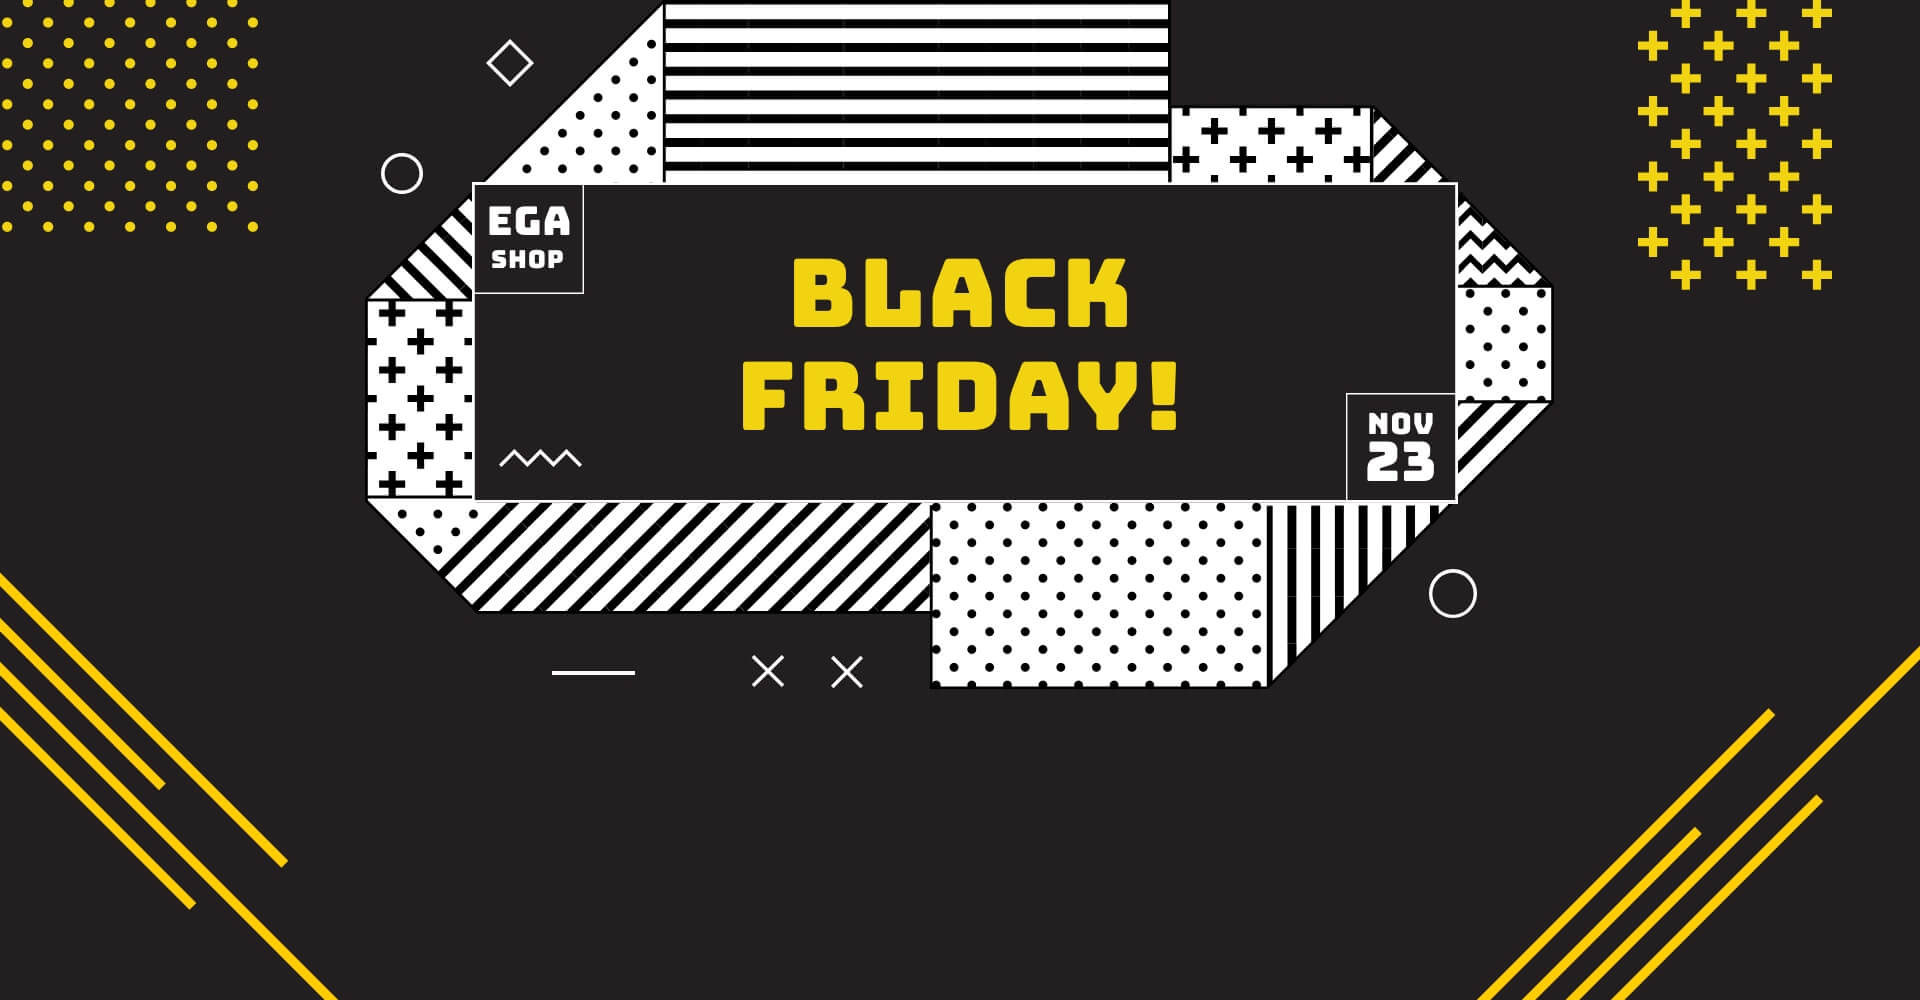 blackfriday_002_banner_img